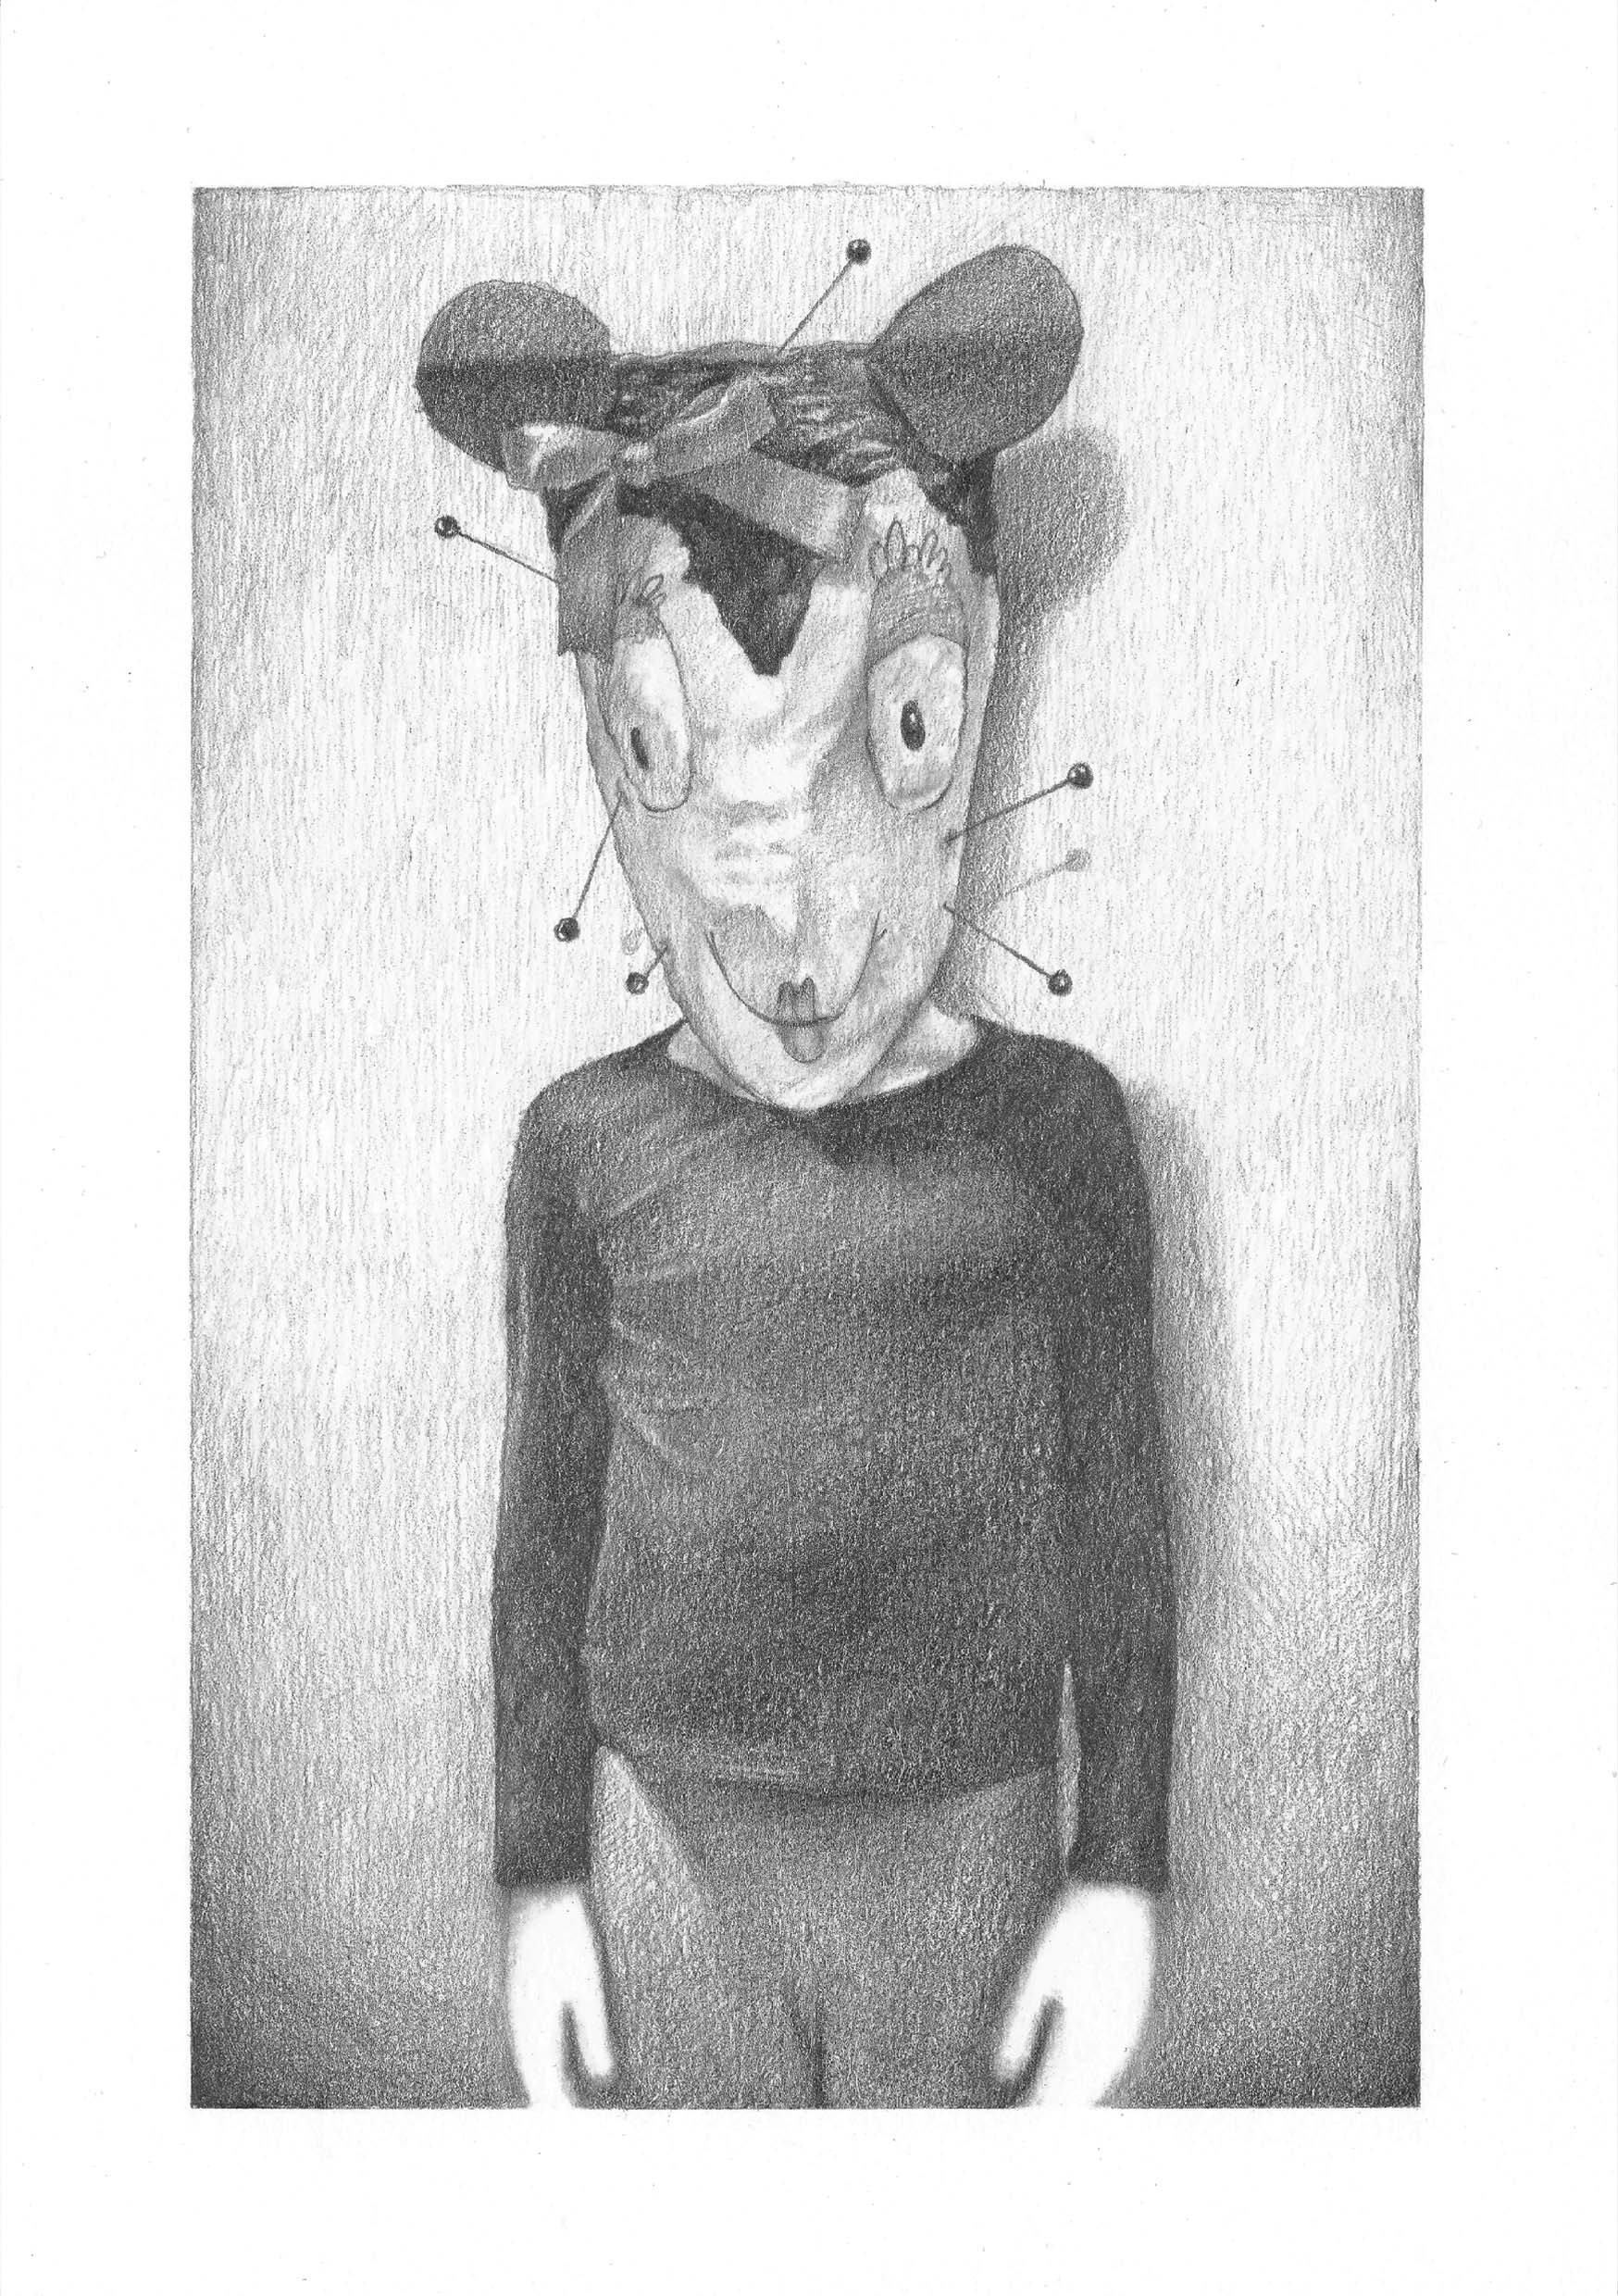 KROMA/ Vassilis Selimas, Anna behind the mask, pencil on paper, 2018